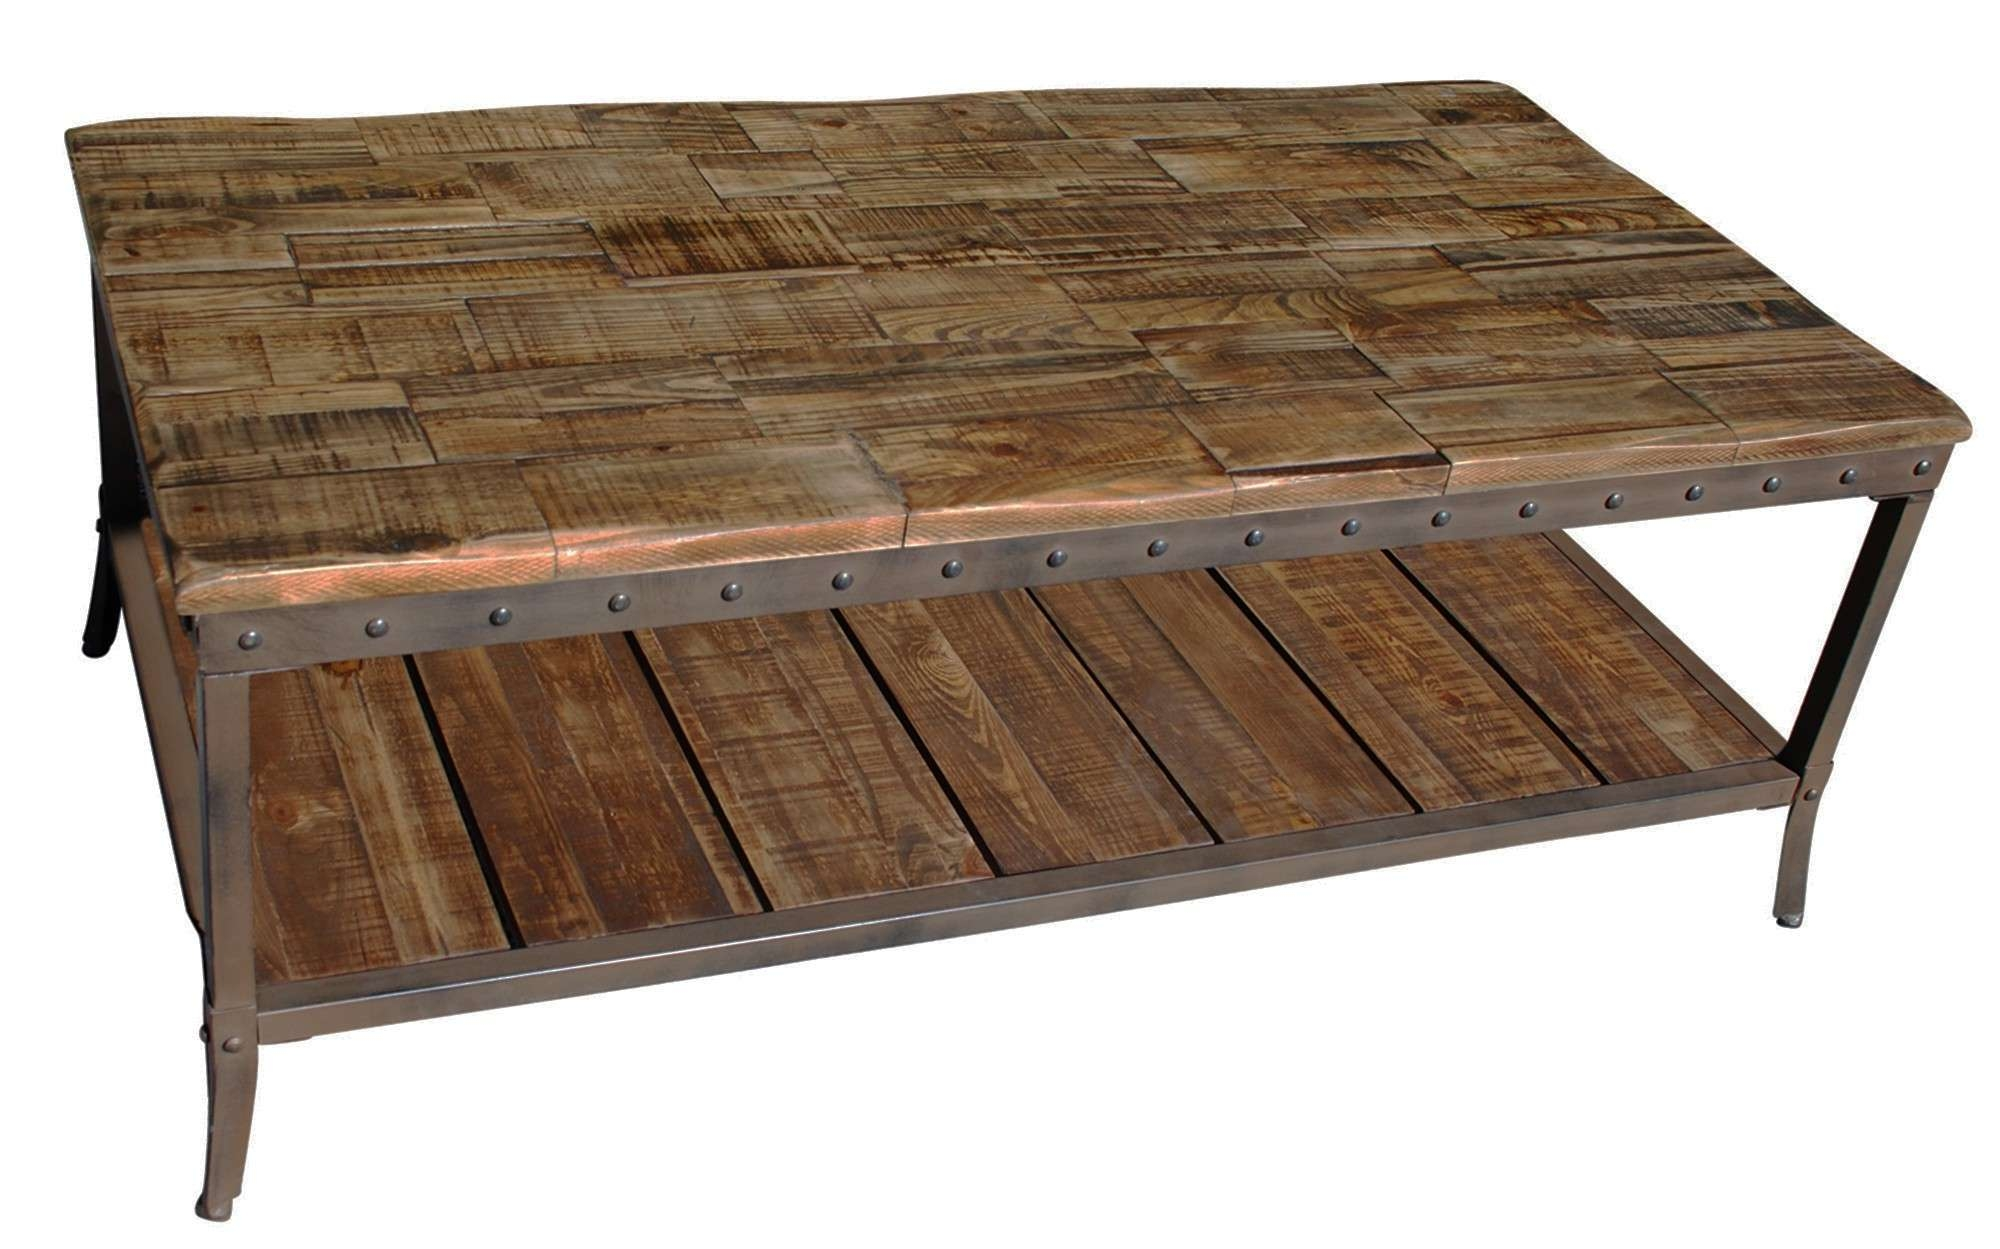 Fashionable Pine Coffee Tables With Storage For Coffee Tables : Big Square Coffee Table Wood Large White With (View 16 of 20)